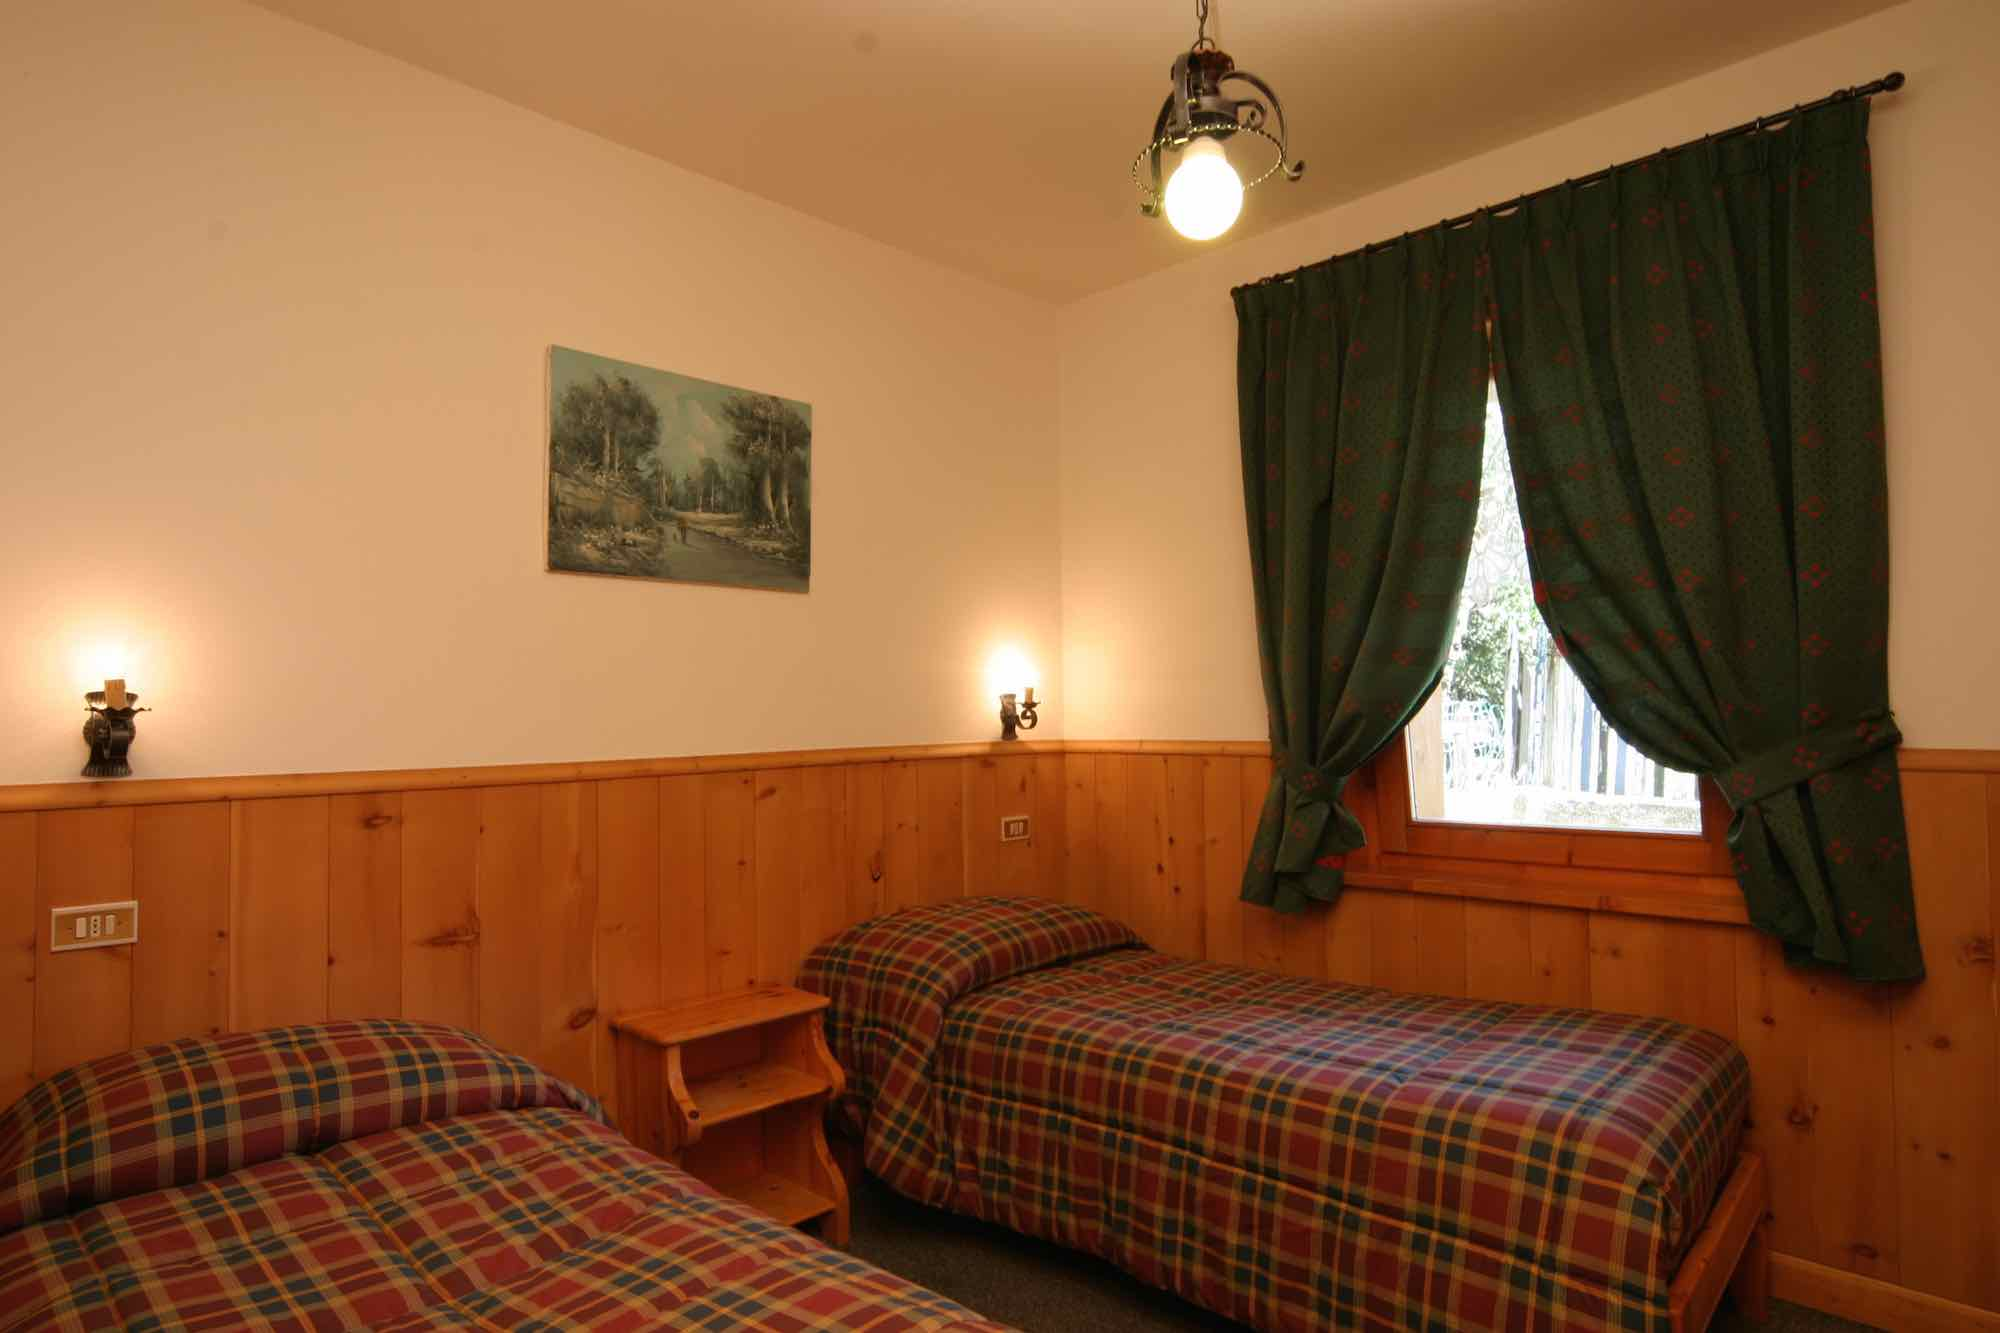 Bait da Borch - Via Saroch N.1430/f, Livigno 23041 - Apartment - Appartamento Eira 3